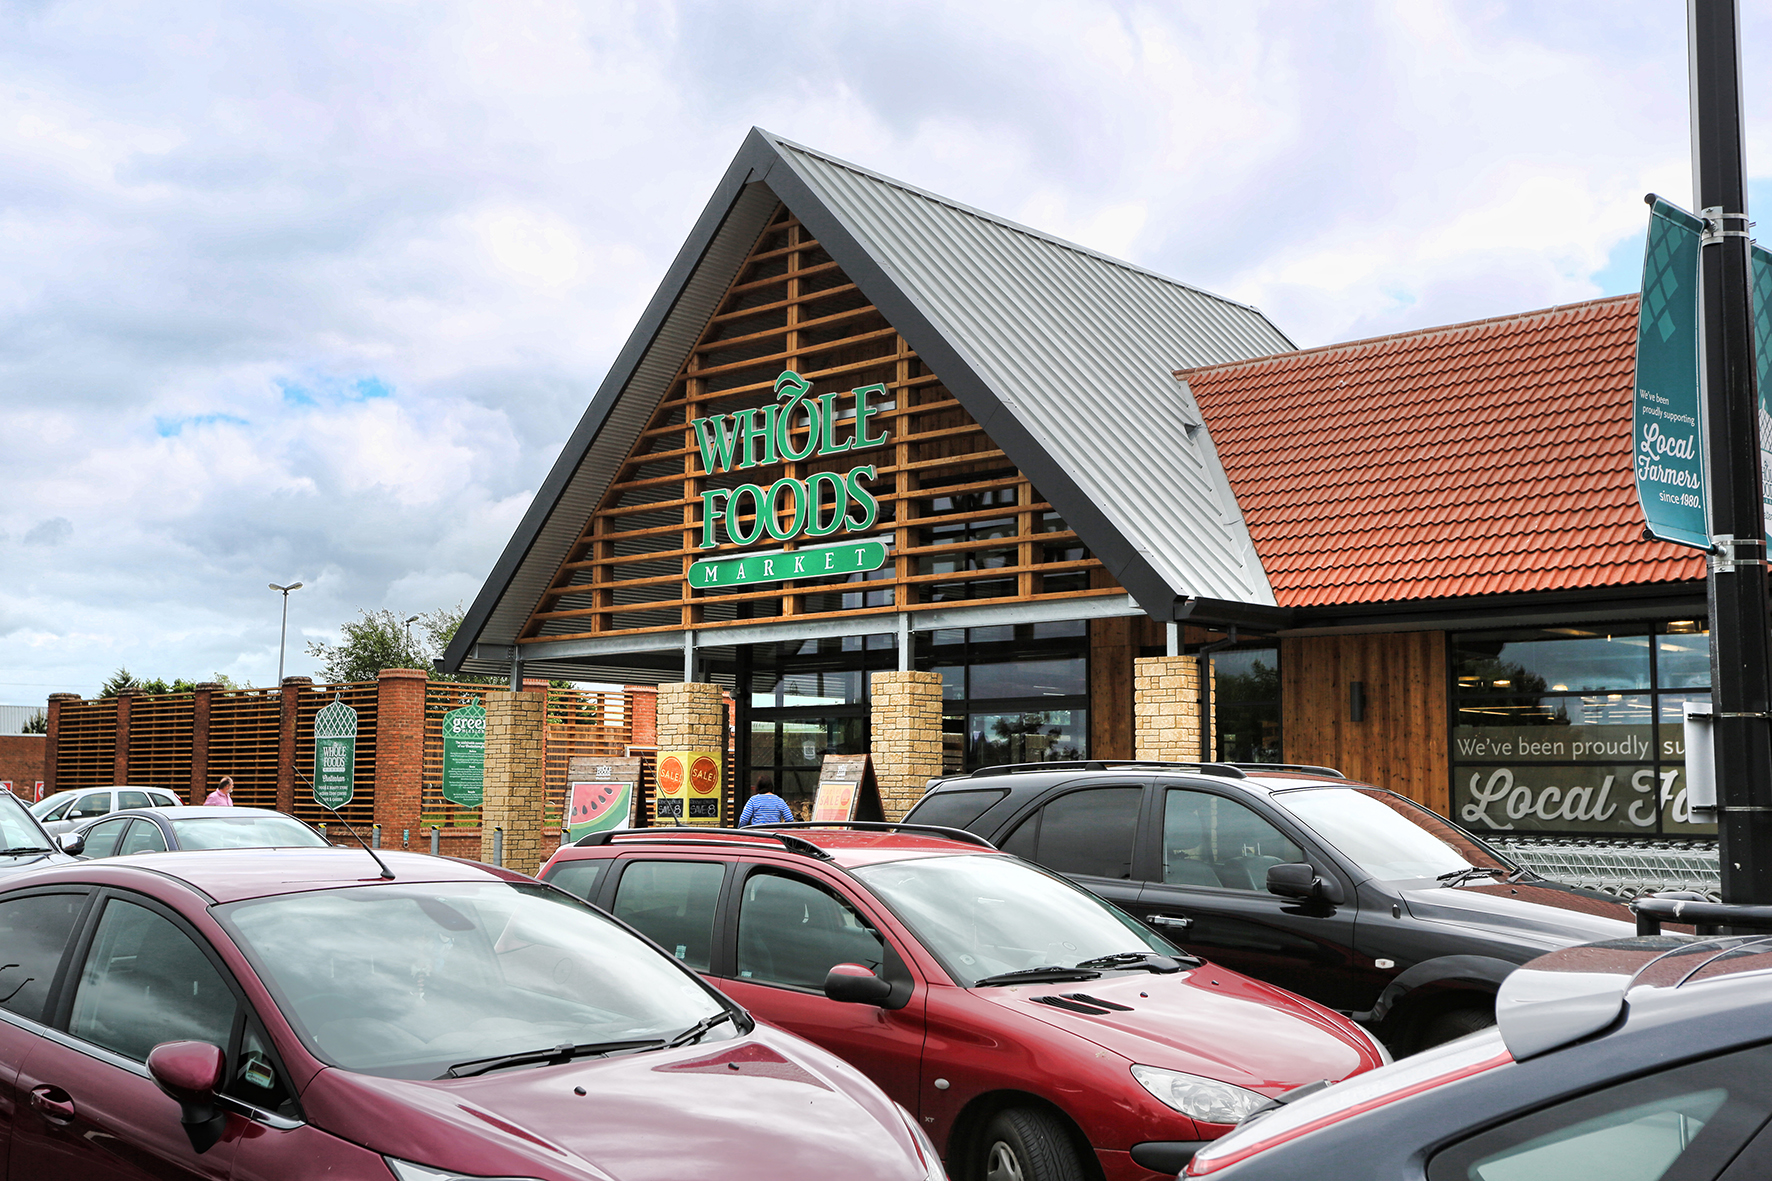 Whole-Foods-31